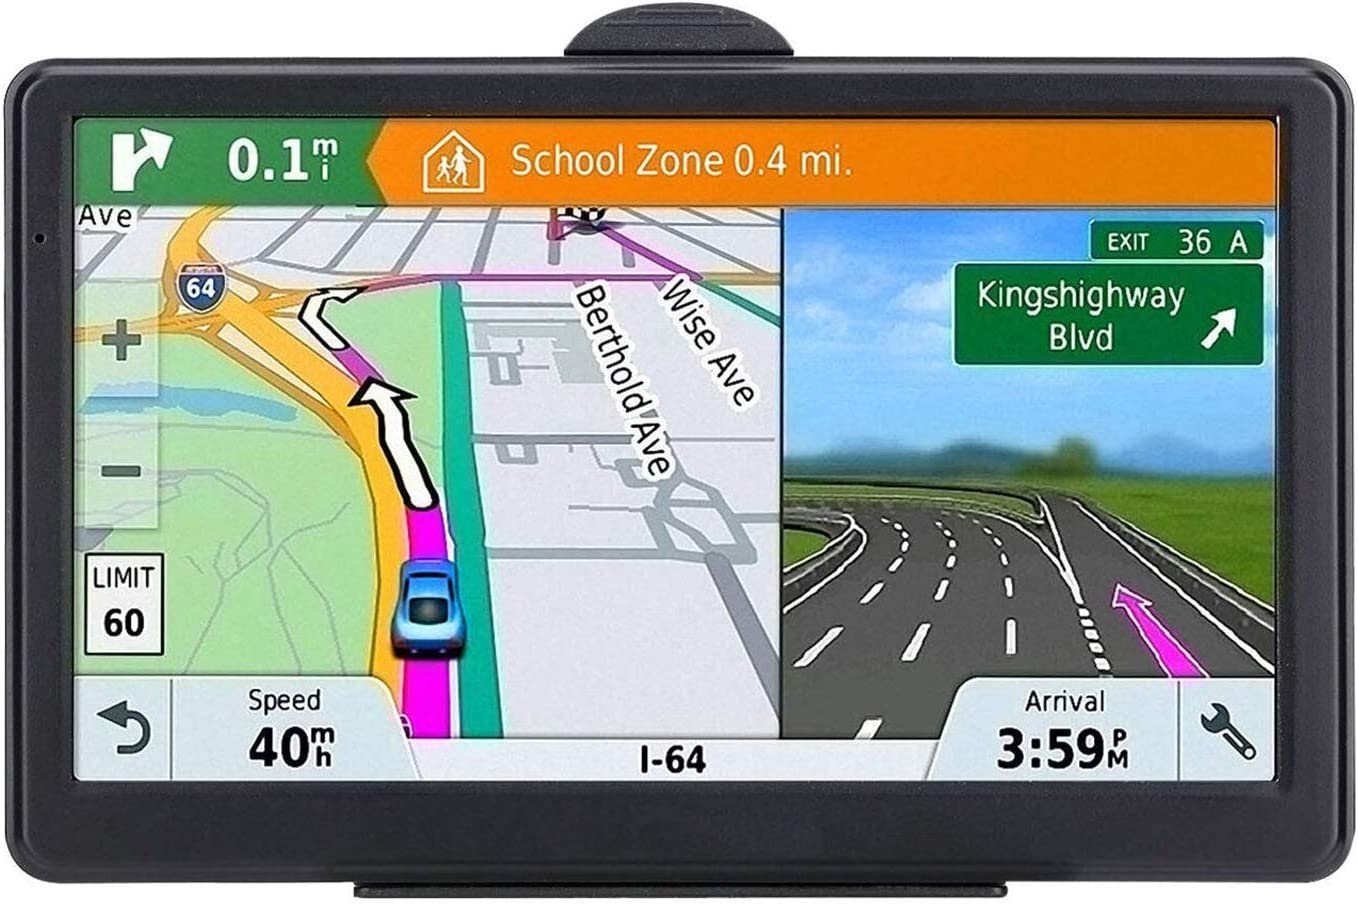 MANVY 7 inch GPS Navigation for Car Truck with 2021 Americas Map Free Lifetime Map Update Includes Postcodes and POI Speed Cam Alerts Lane Assist Guidance